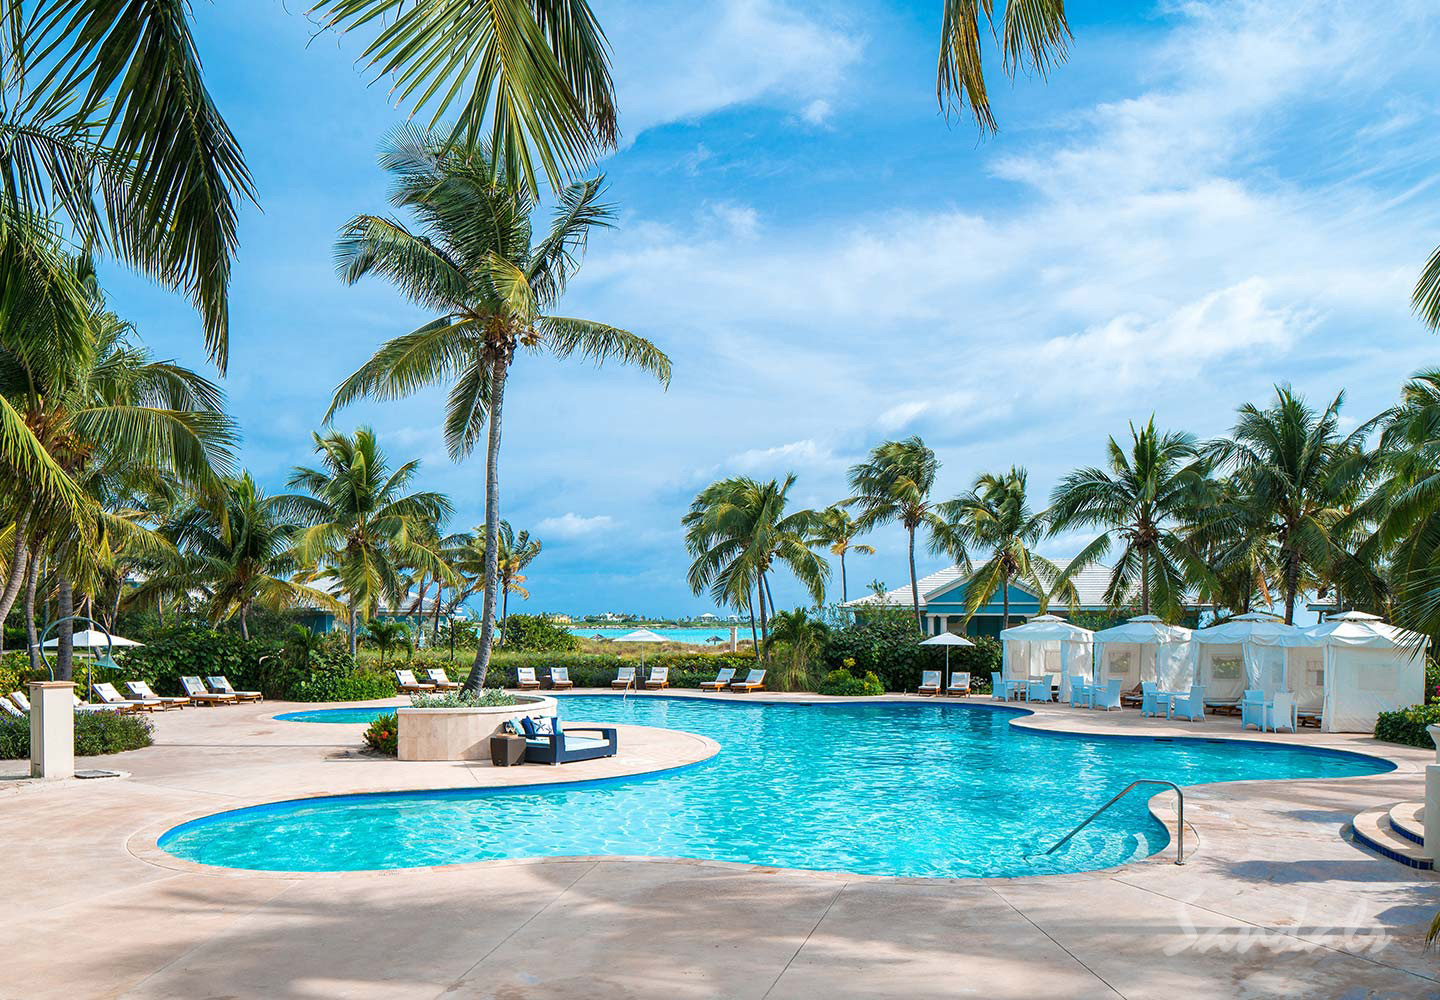 Travel Agency All-Inclusive Resort Sandals Emerald Bay 120